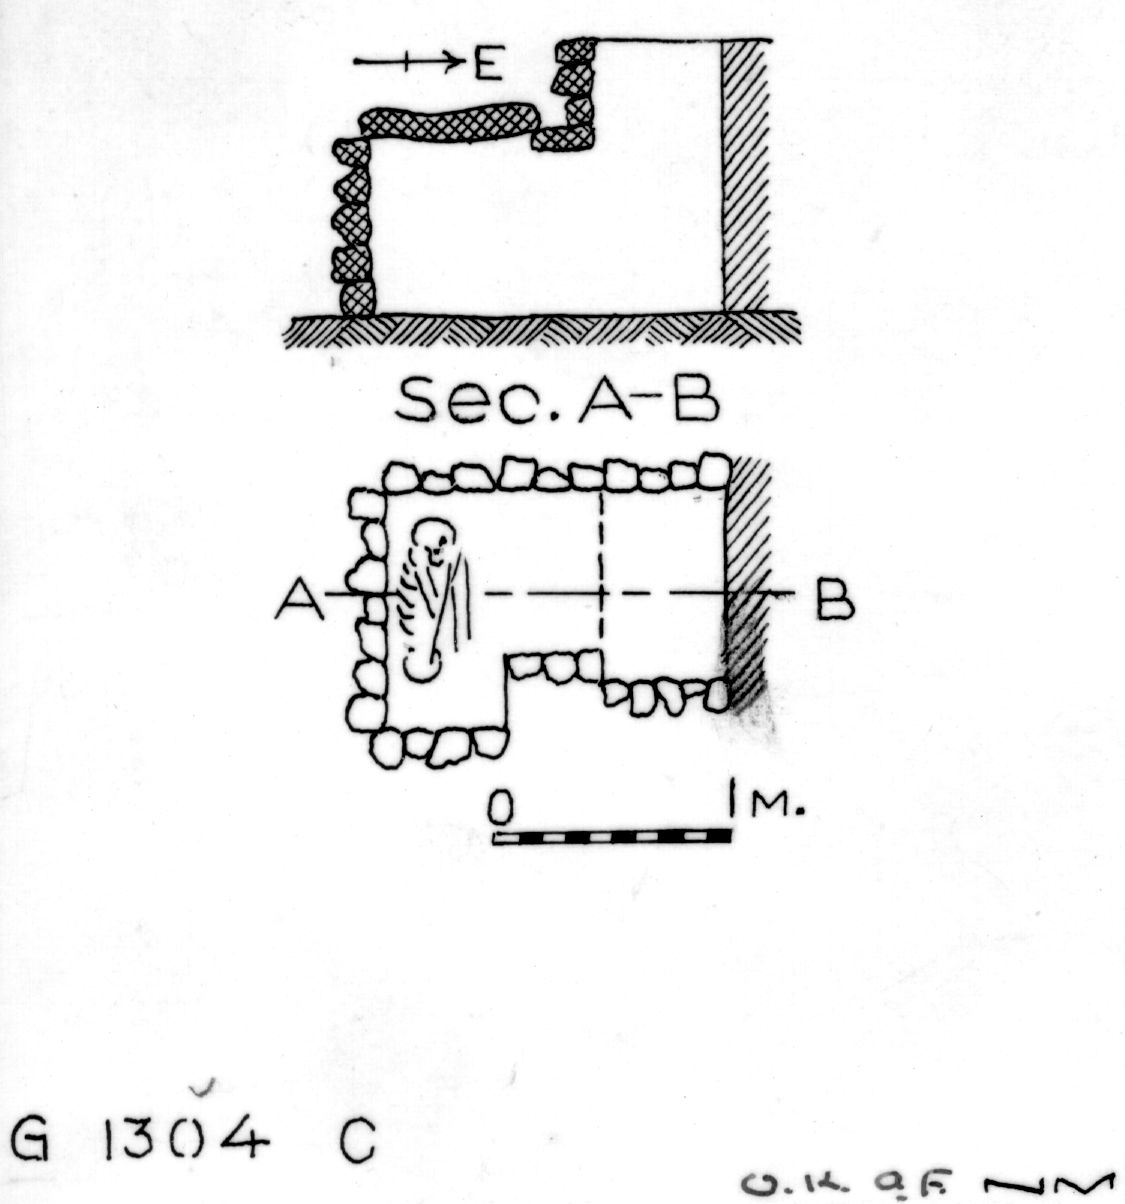 Maps and plans: G 1304, Shaft C